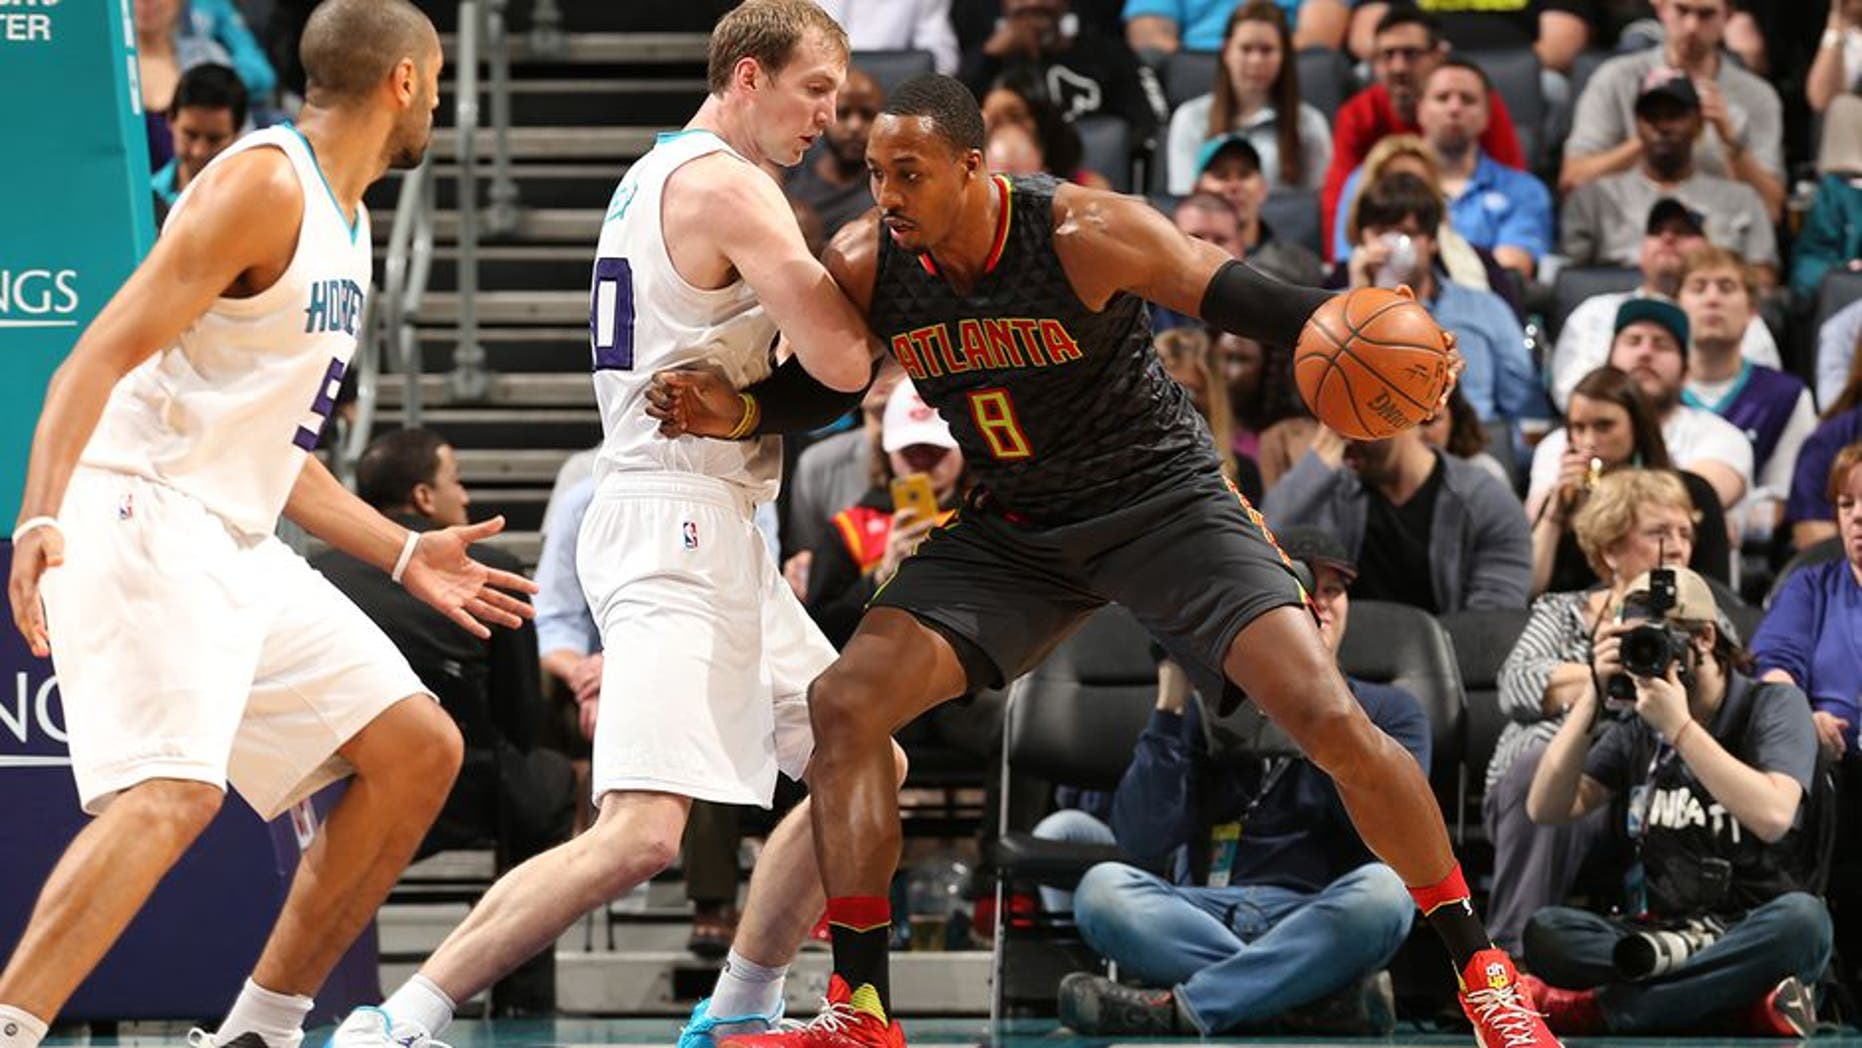 CHARLOTTE, NC - MARCH 20: Dwight Howard #8 of the Atlanta Hawks handles the ball during a game against the Charlotte Hornets on March 20, 2017 at Spectrum Center in Charlotte, North Carolina. NOTE TO USER: User expressly acknowledges and agrees that, by downloading and/or using this photograph, user is consenting to the terms and conditions of the Getty Images License Agreement. Mandatory Copyright Notice: Copyright 2017 NBAE (Photo by Kent Smith/NBAE via Getty Images)